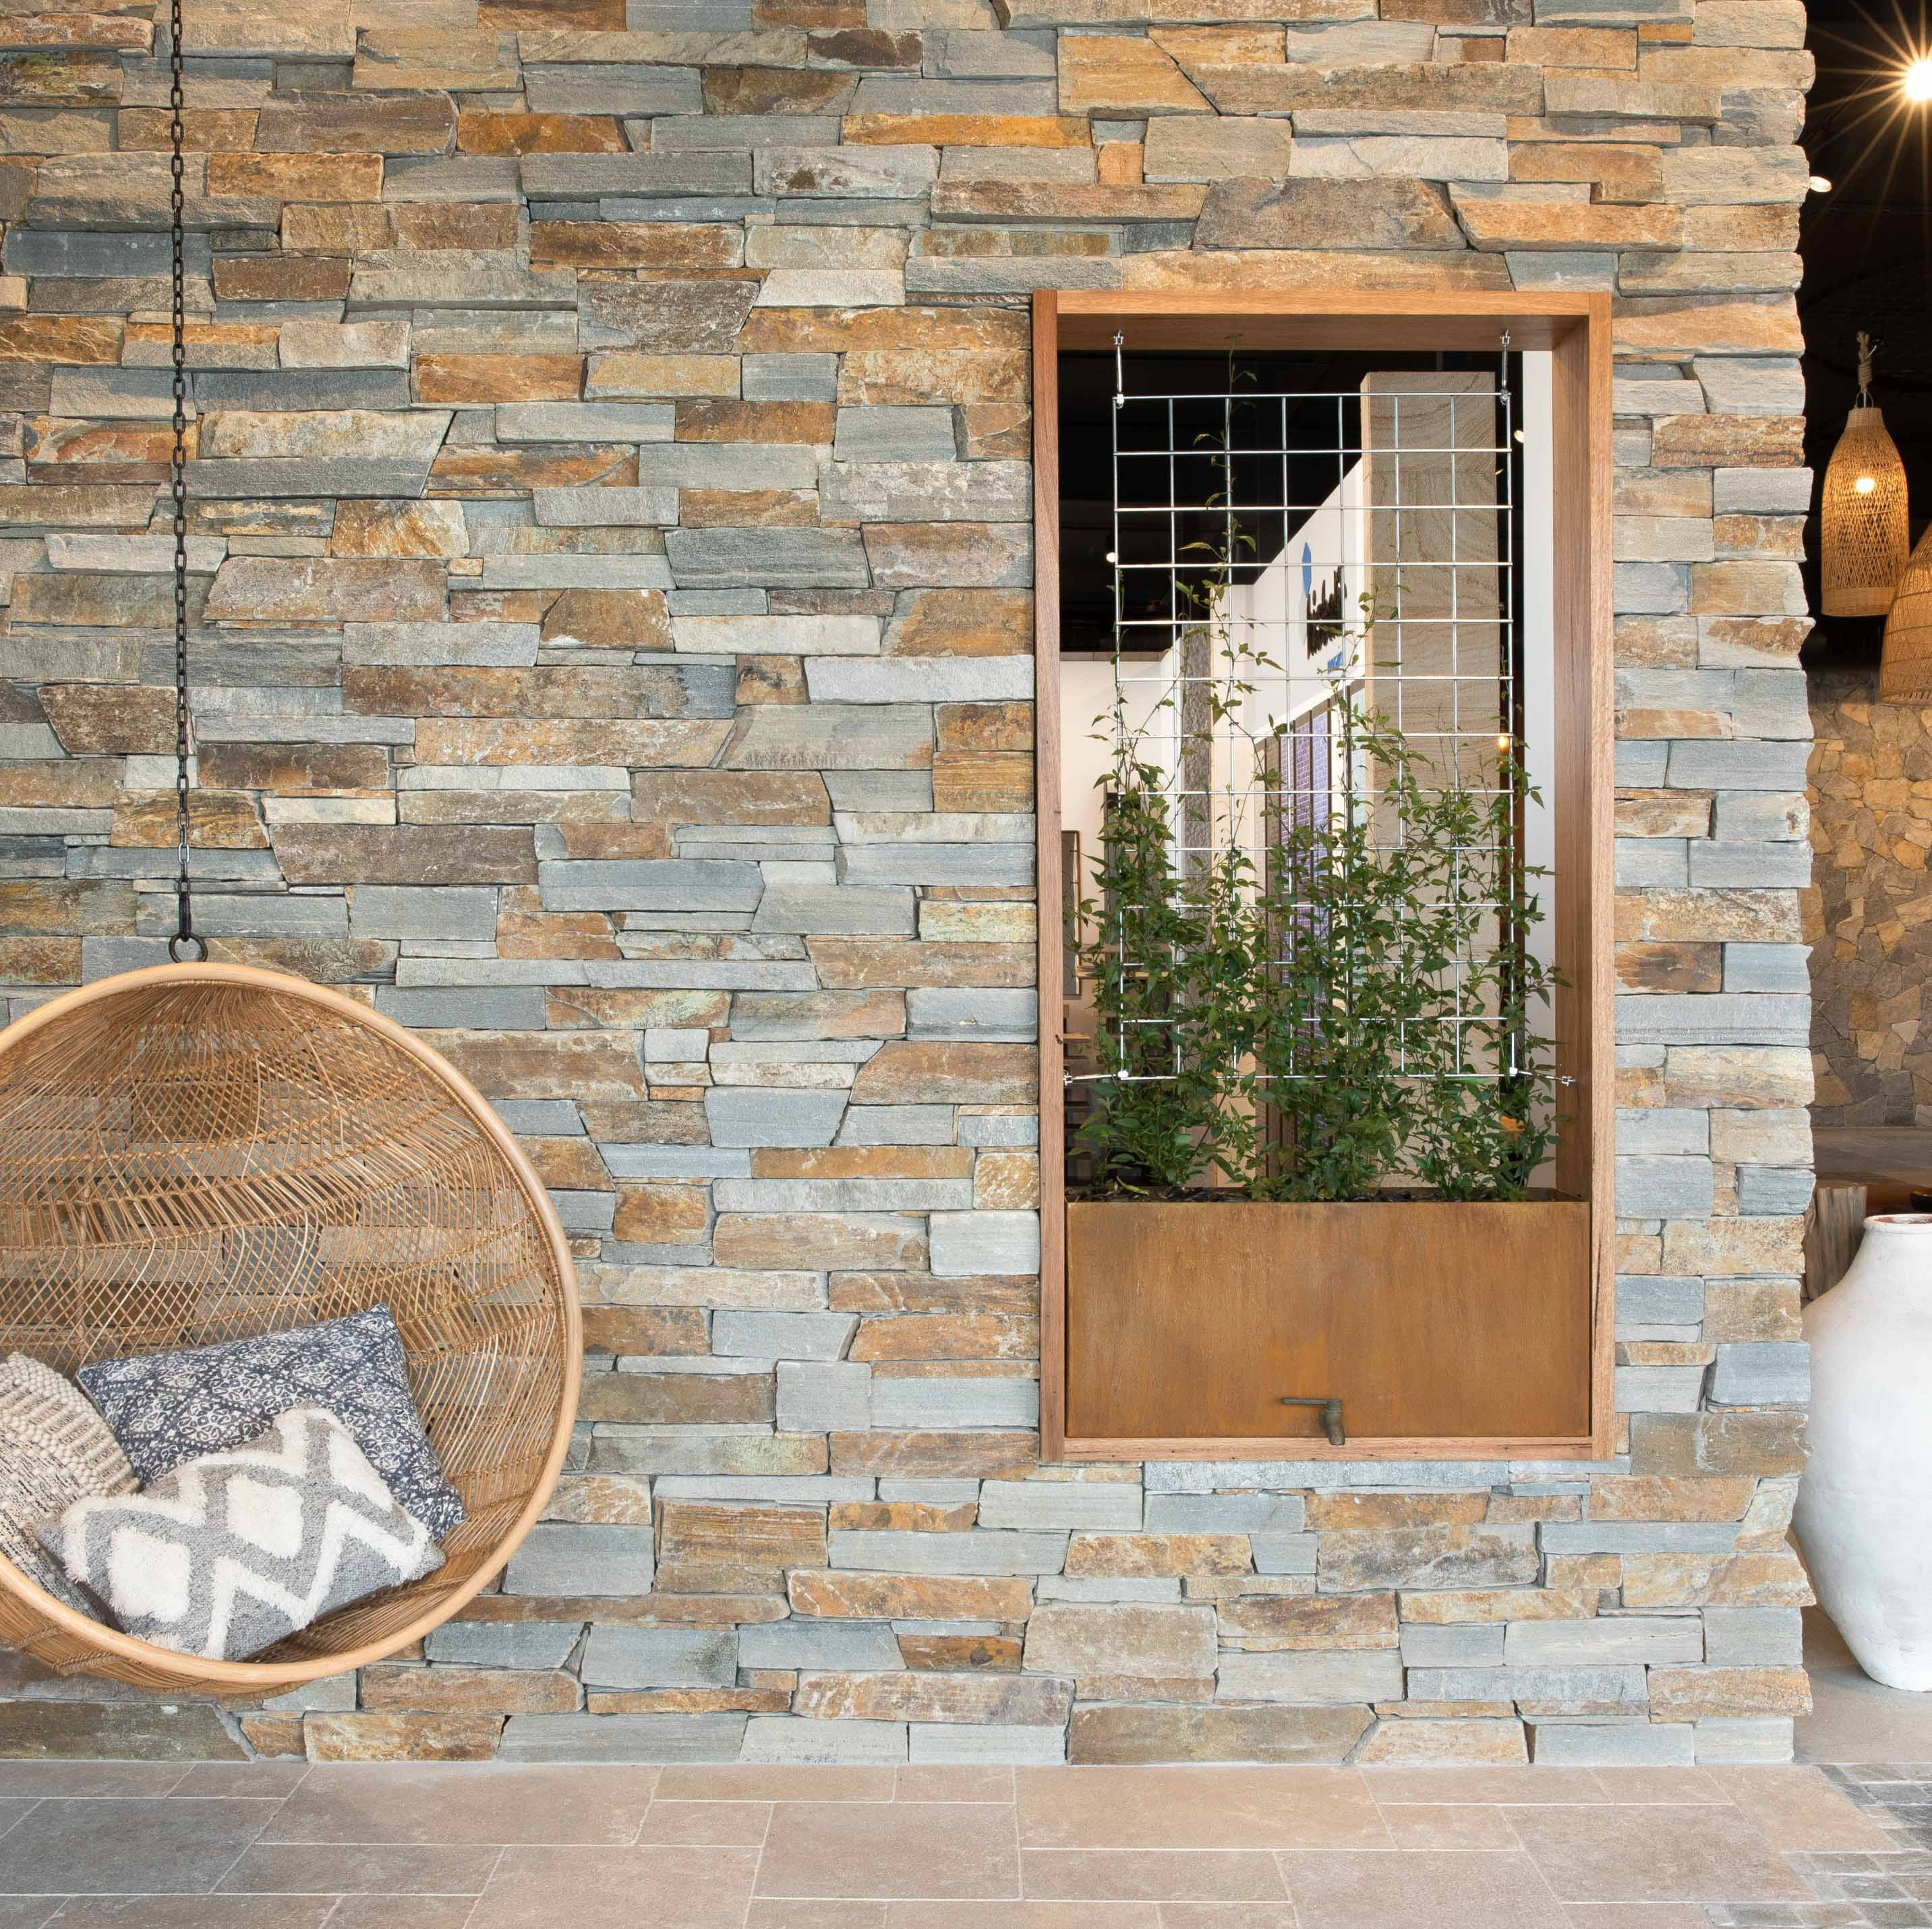 Wall-Cladding-and-Stacked-Stones Hero Station